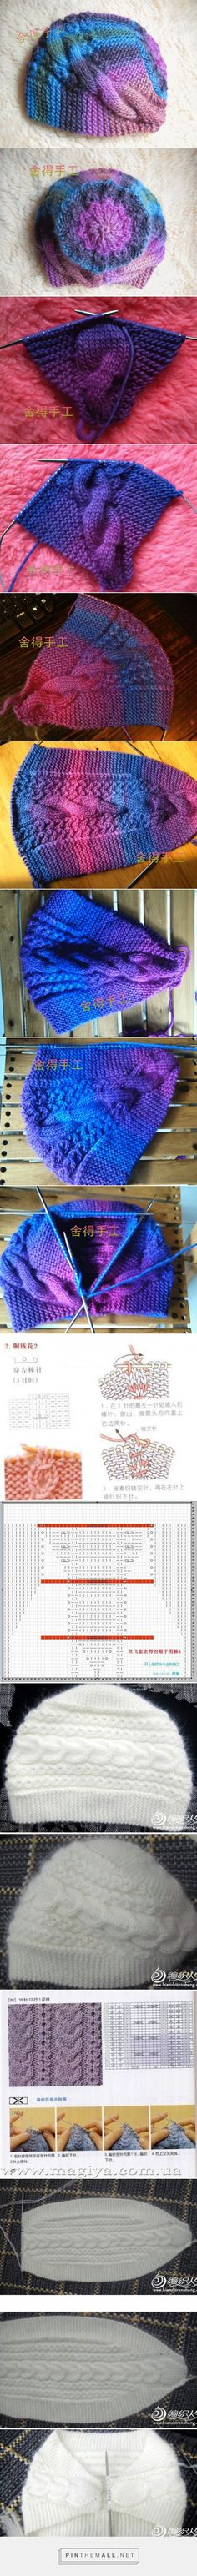 """Knitted cabled hat; double-wedge shaped base with grafted ends, stitches picked up and knit in the round to finish crown. Two different cable charts. ~~ http://magic-art.info/blog/vjazanaja_spicami_teplaja_shapka_obodok_na_zimu/2014-12-06-609 ~~ Вязаная спицами теплая шапка-ободок на зиму. - 6 Декабря 2014 - Мастер классы по рукоделию - Информационный портал """"Магия Творчества"""" [ """" double-wedge shaped base with grafted ends, stitches picked up and knit in the round to finish crown. Two…"""